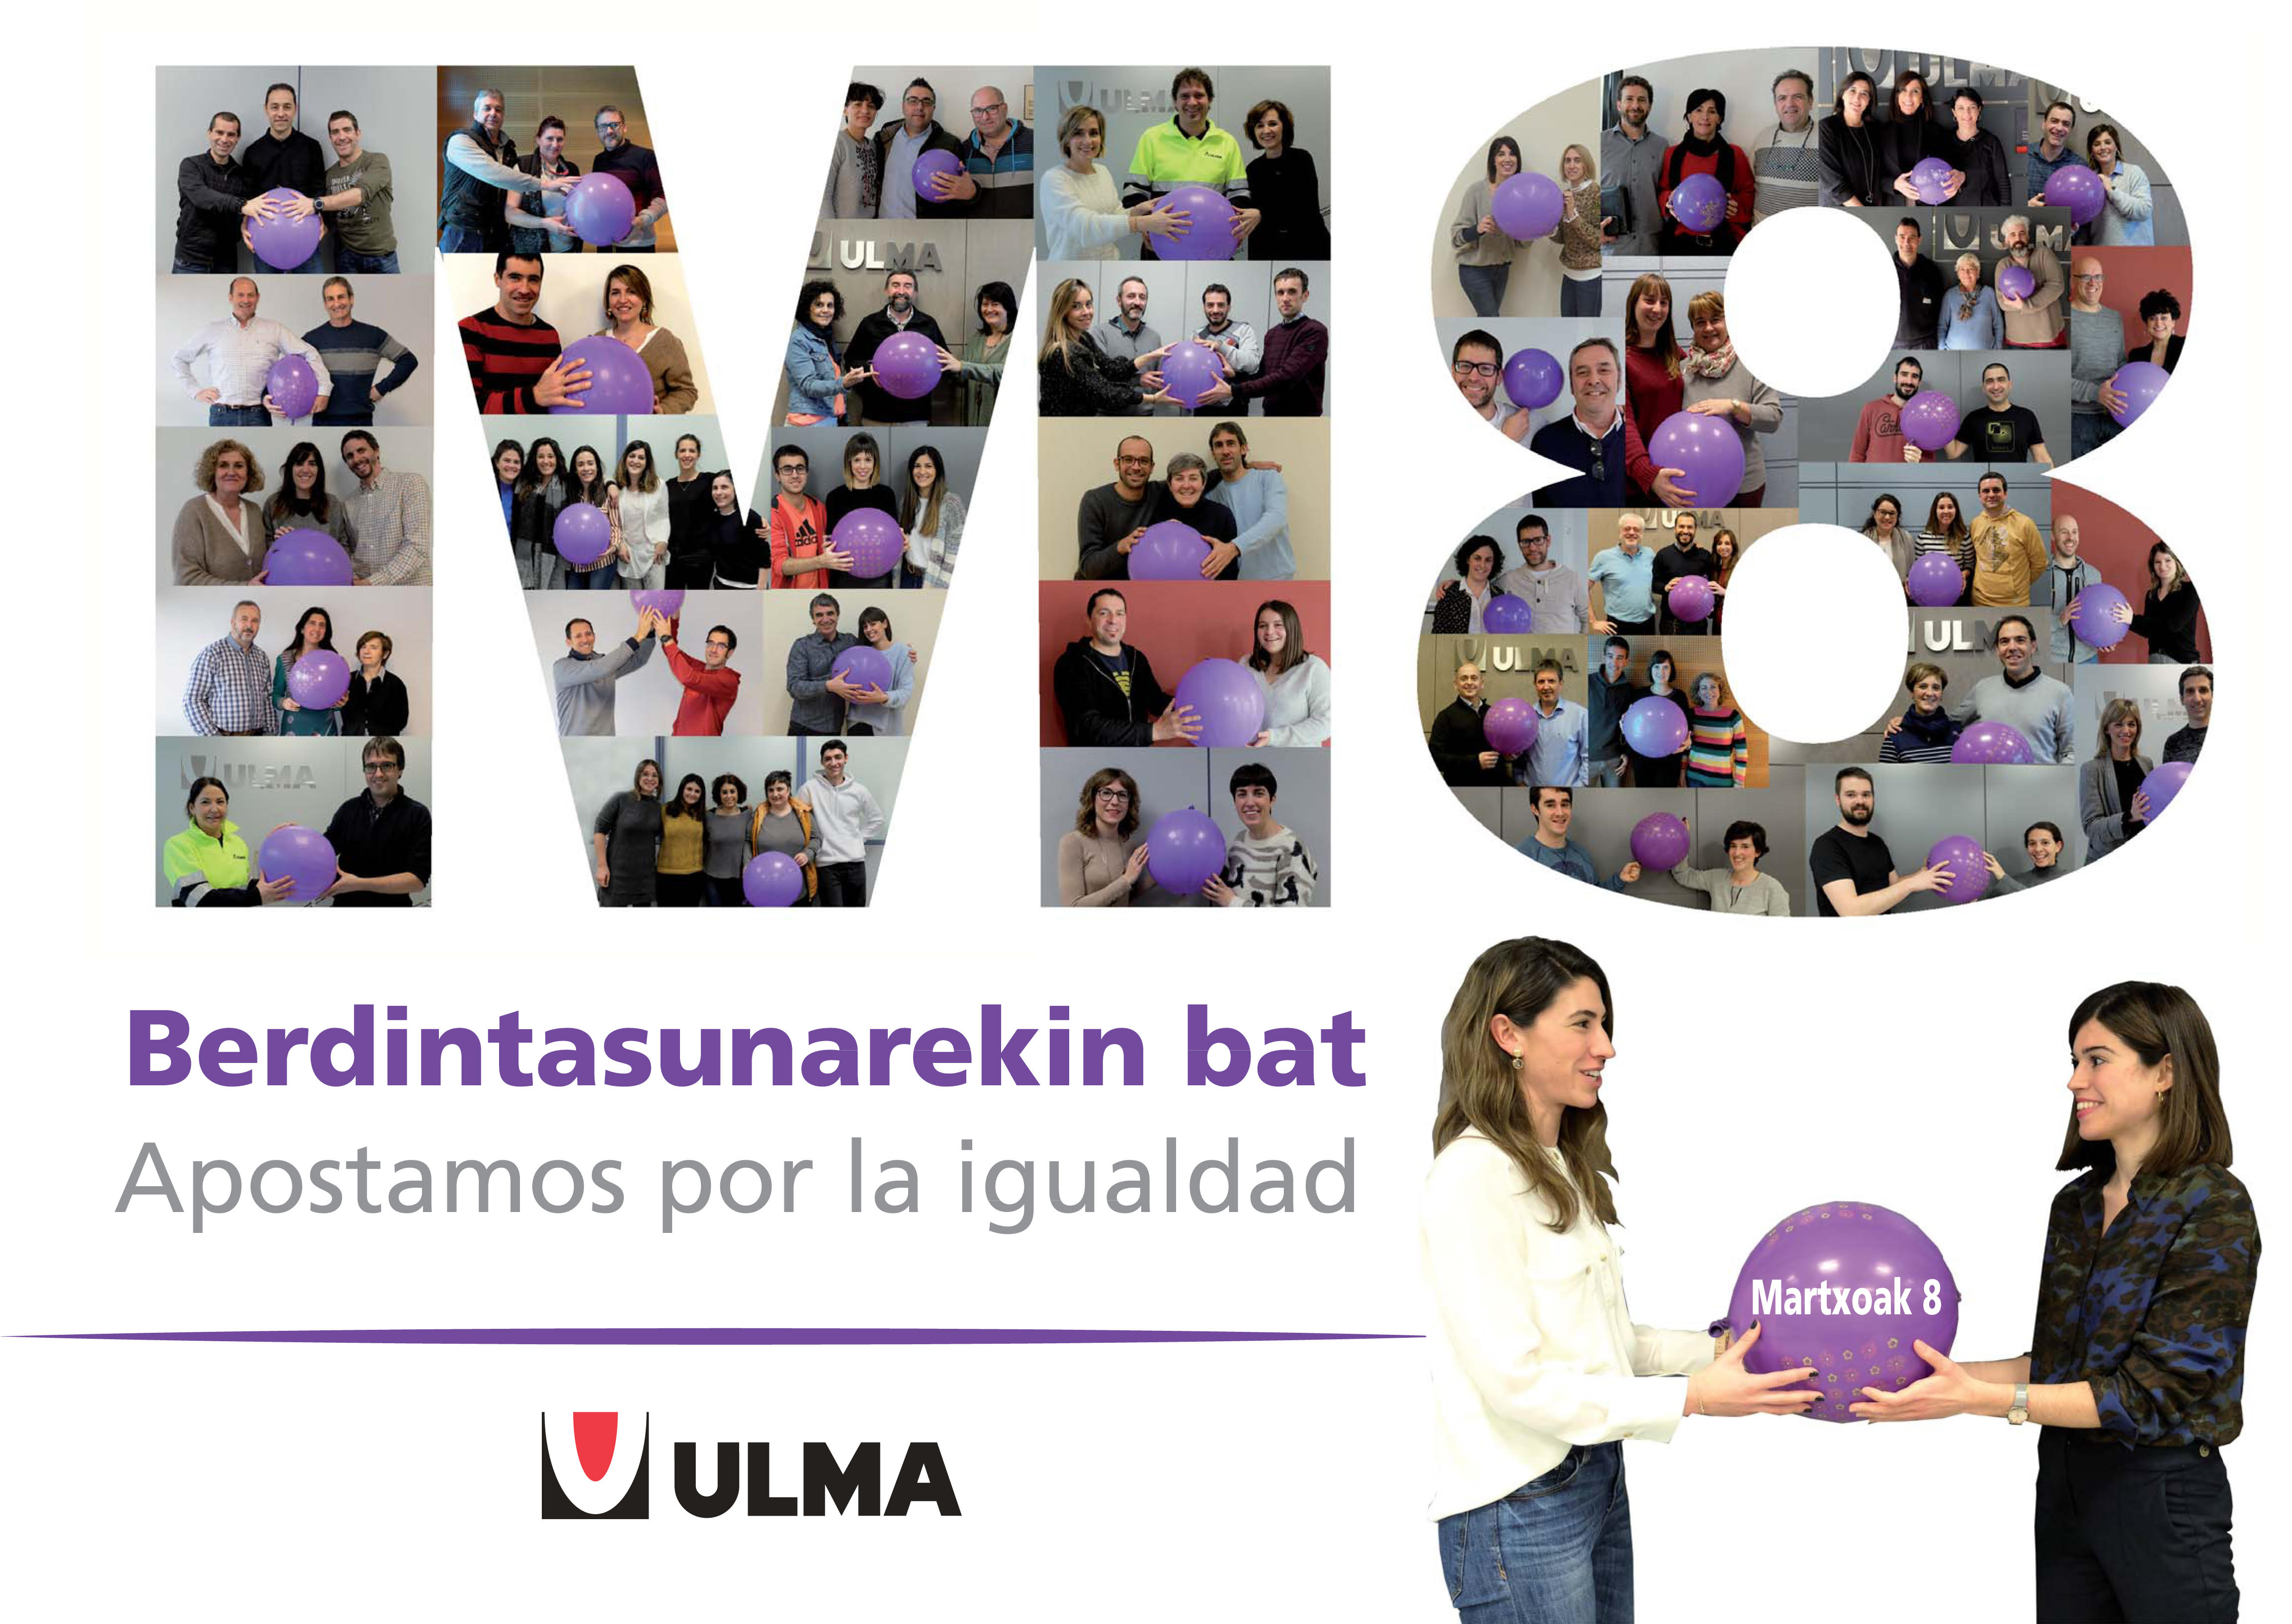 In ULMA, we invest in equality